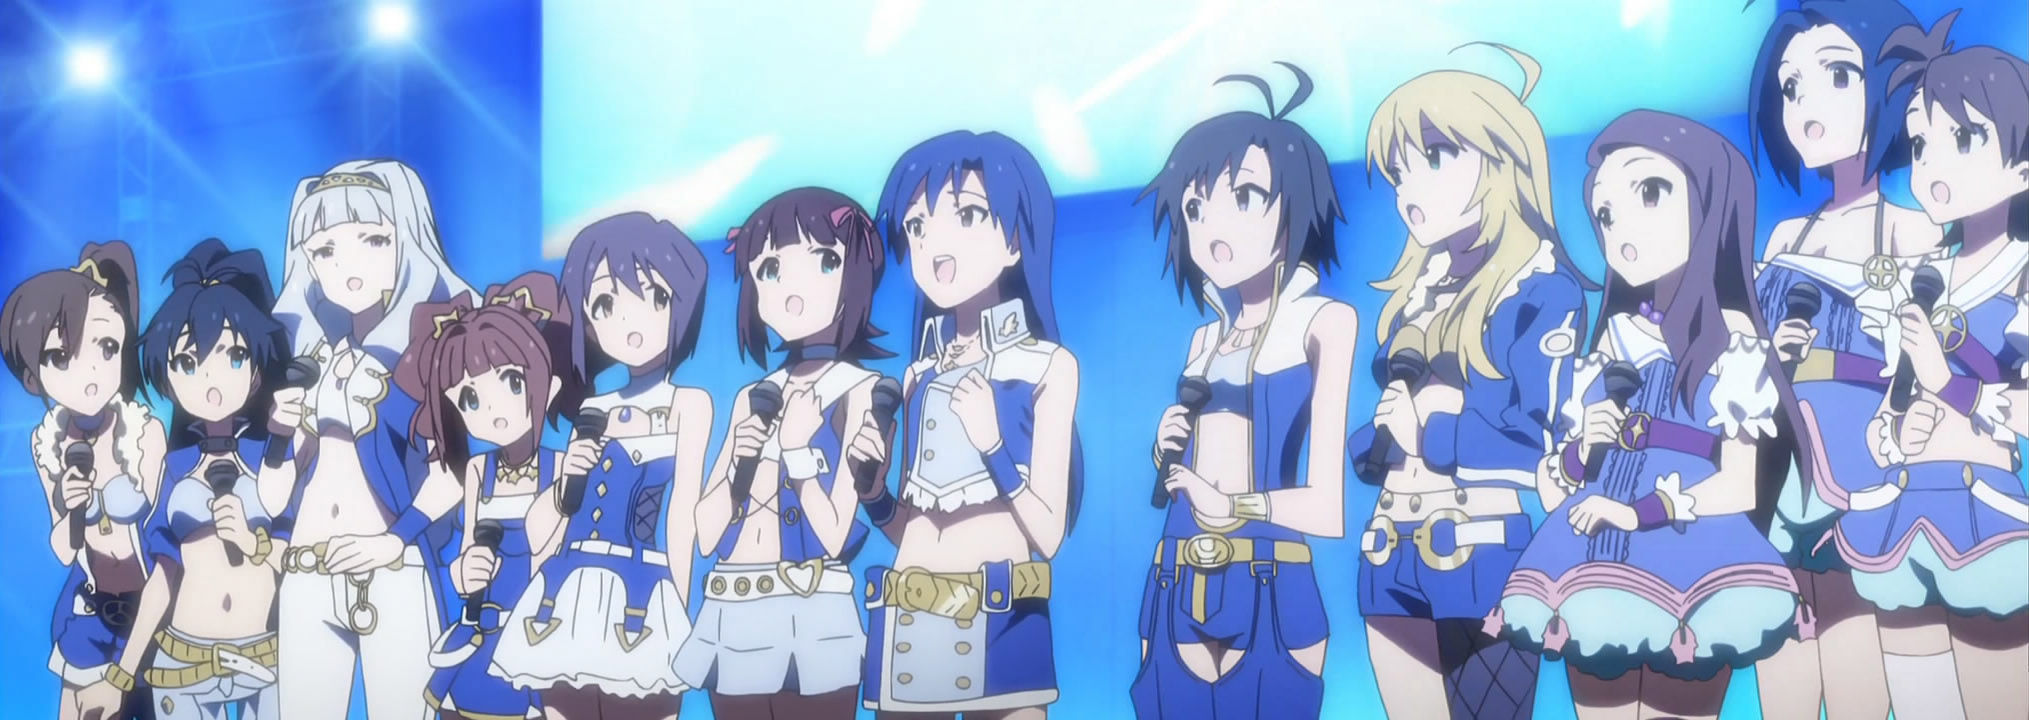 THE IDOLM@STER - 20 - Large 40